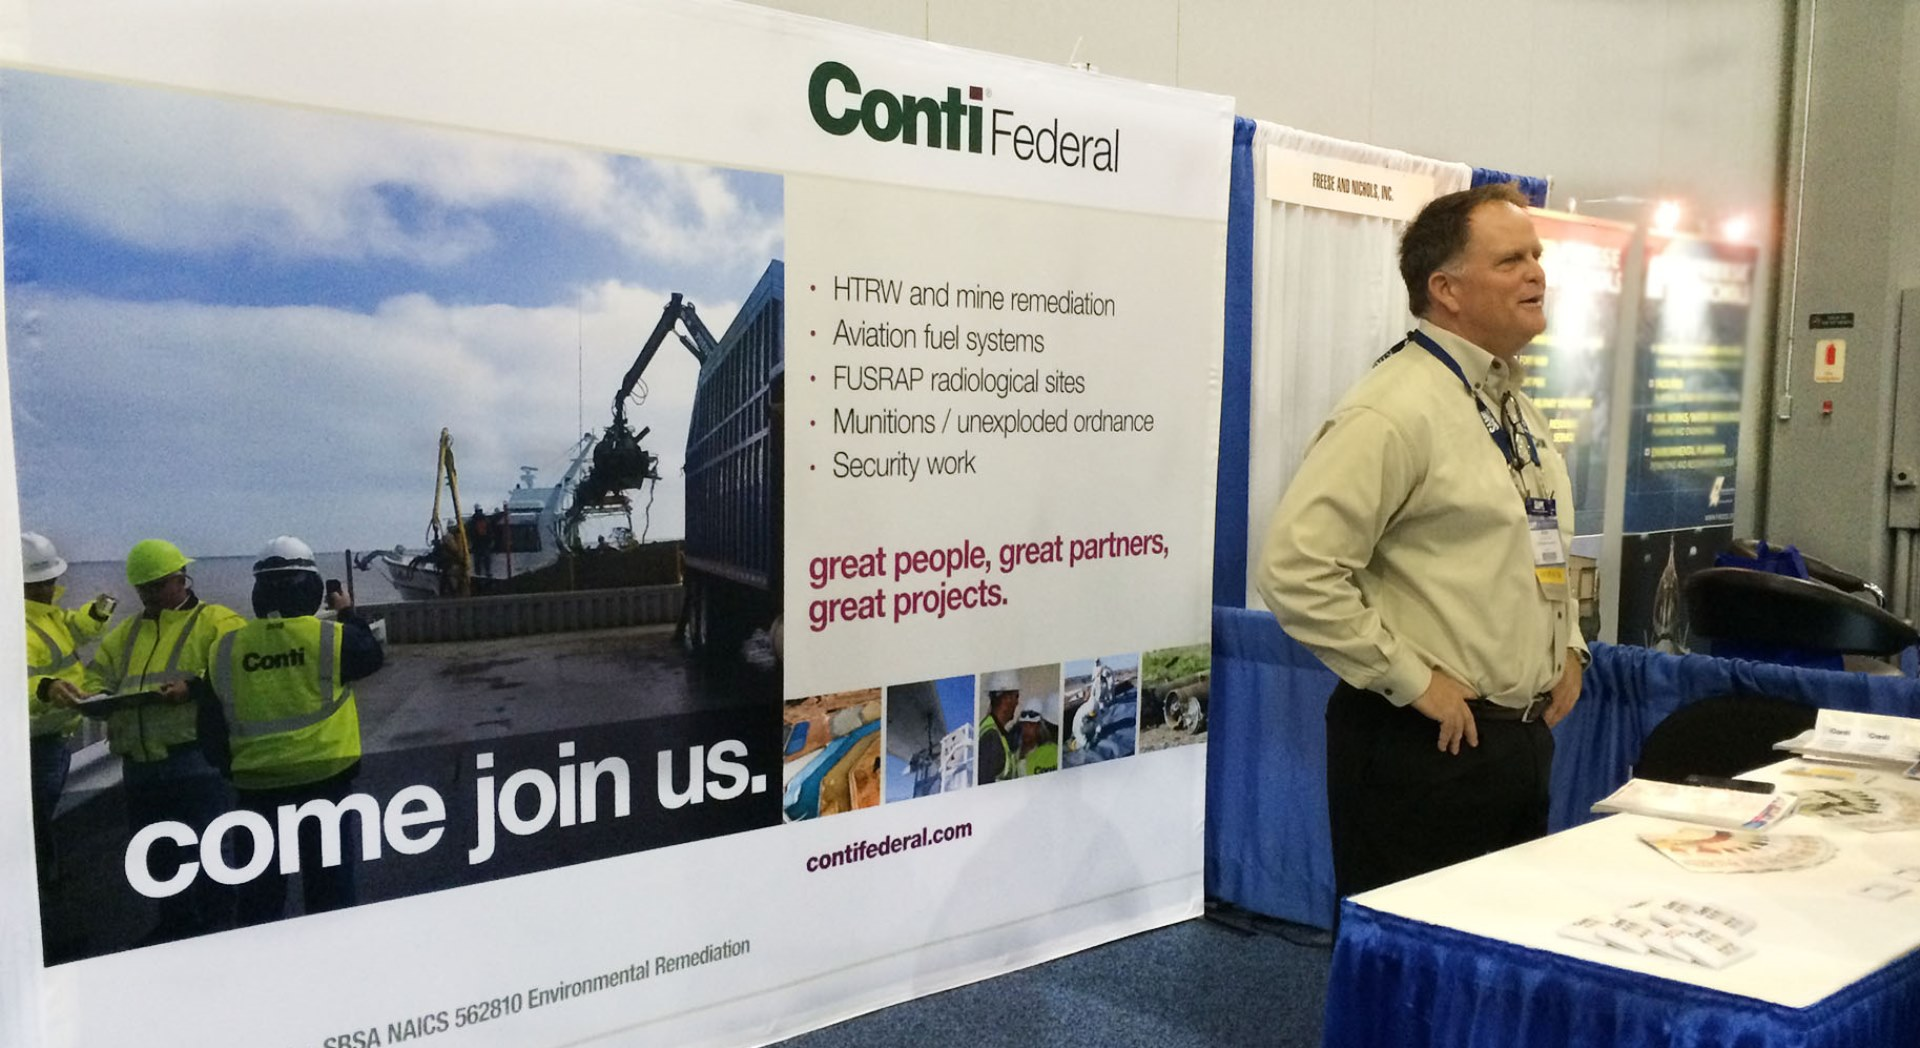 Conti's Long-Term Commitment to Supporting Small Businesses